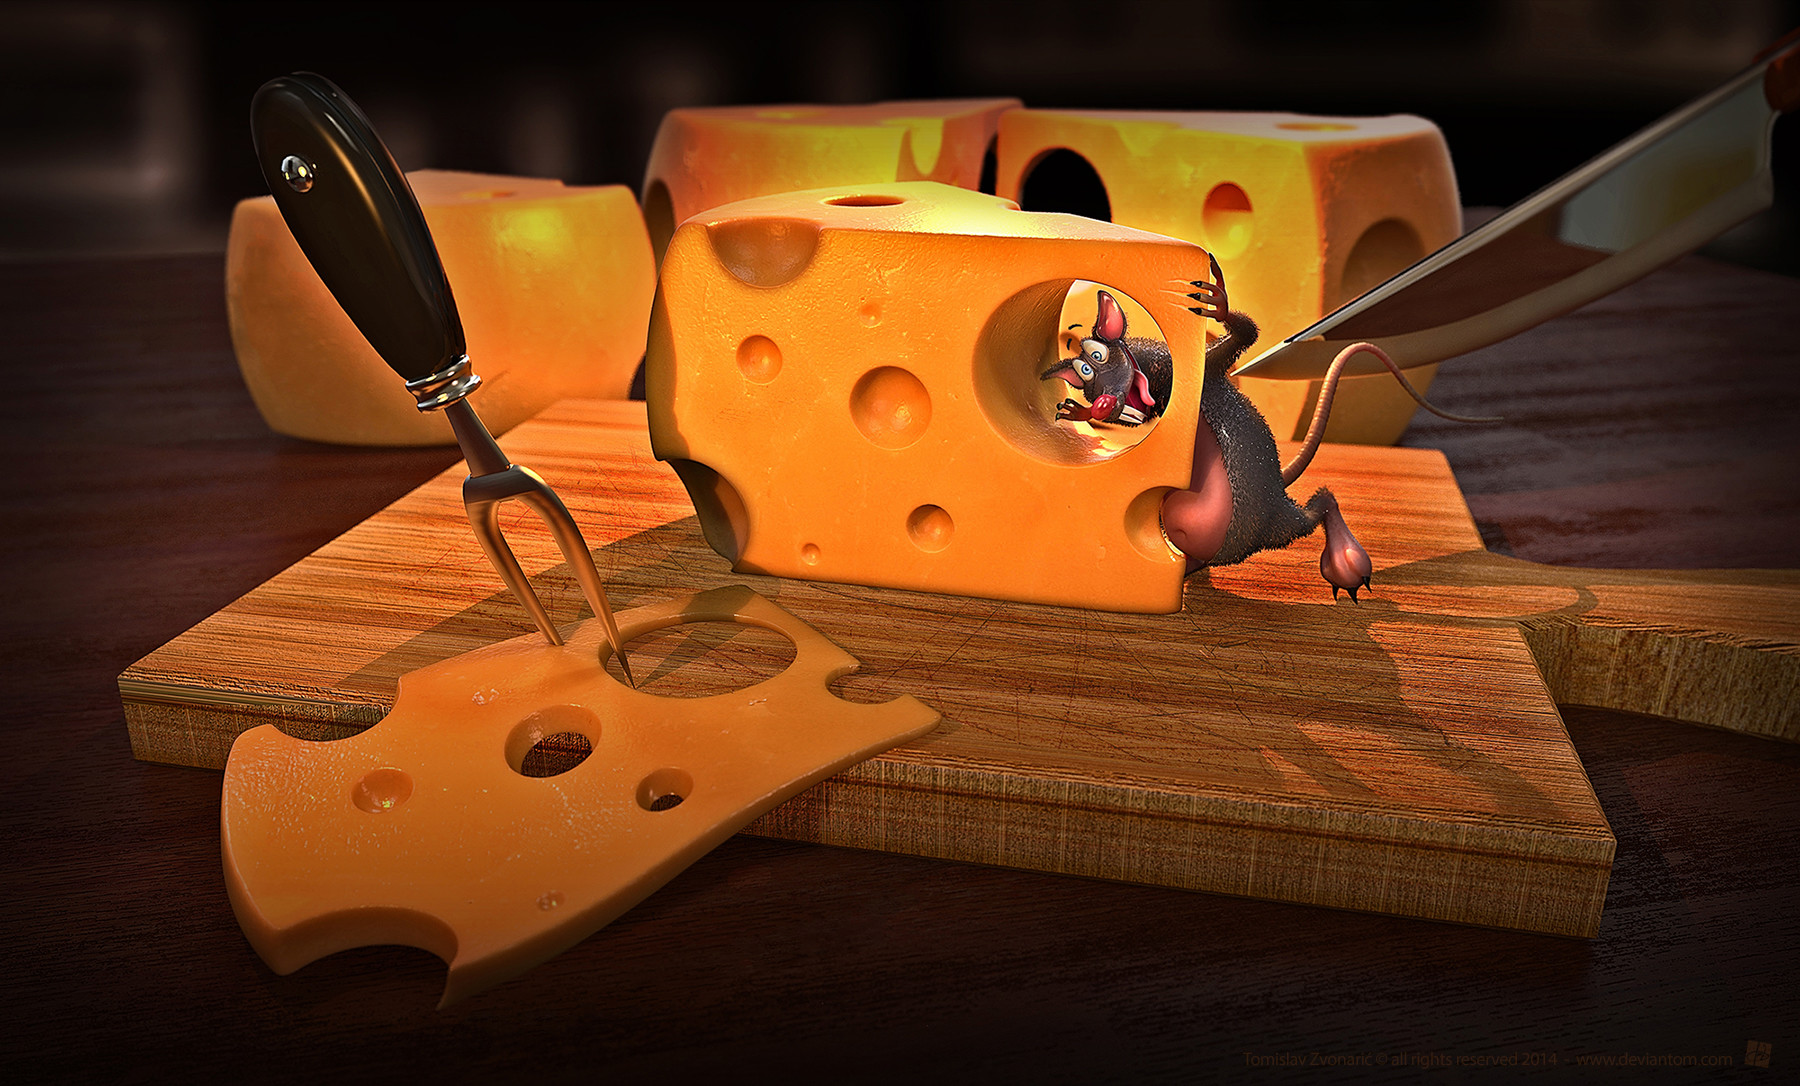 Tomislav zvonaric cheese scene with funny mouse